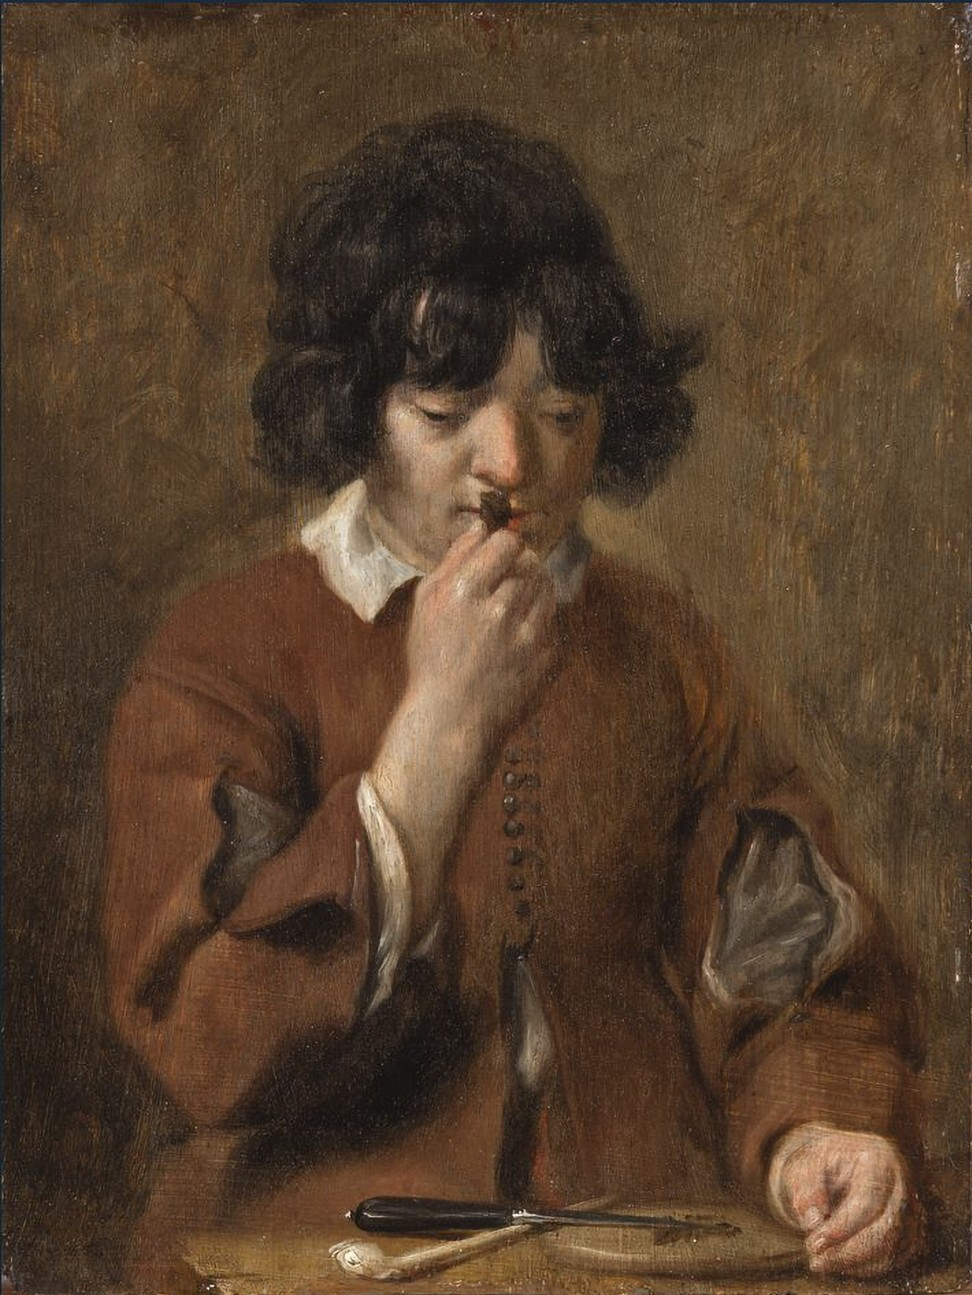 Michaelina Wautier's A Boy Smelling Tobacco.